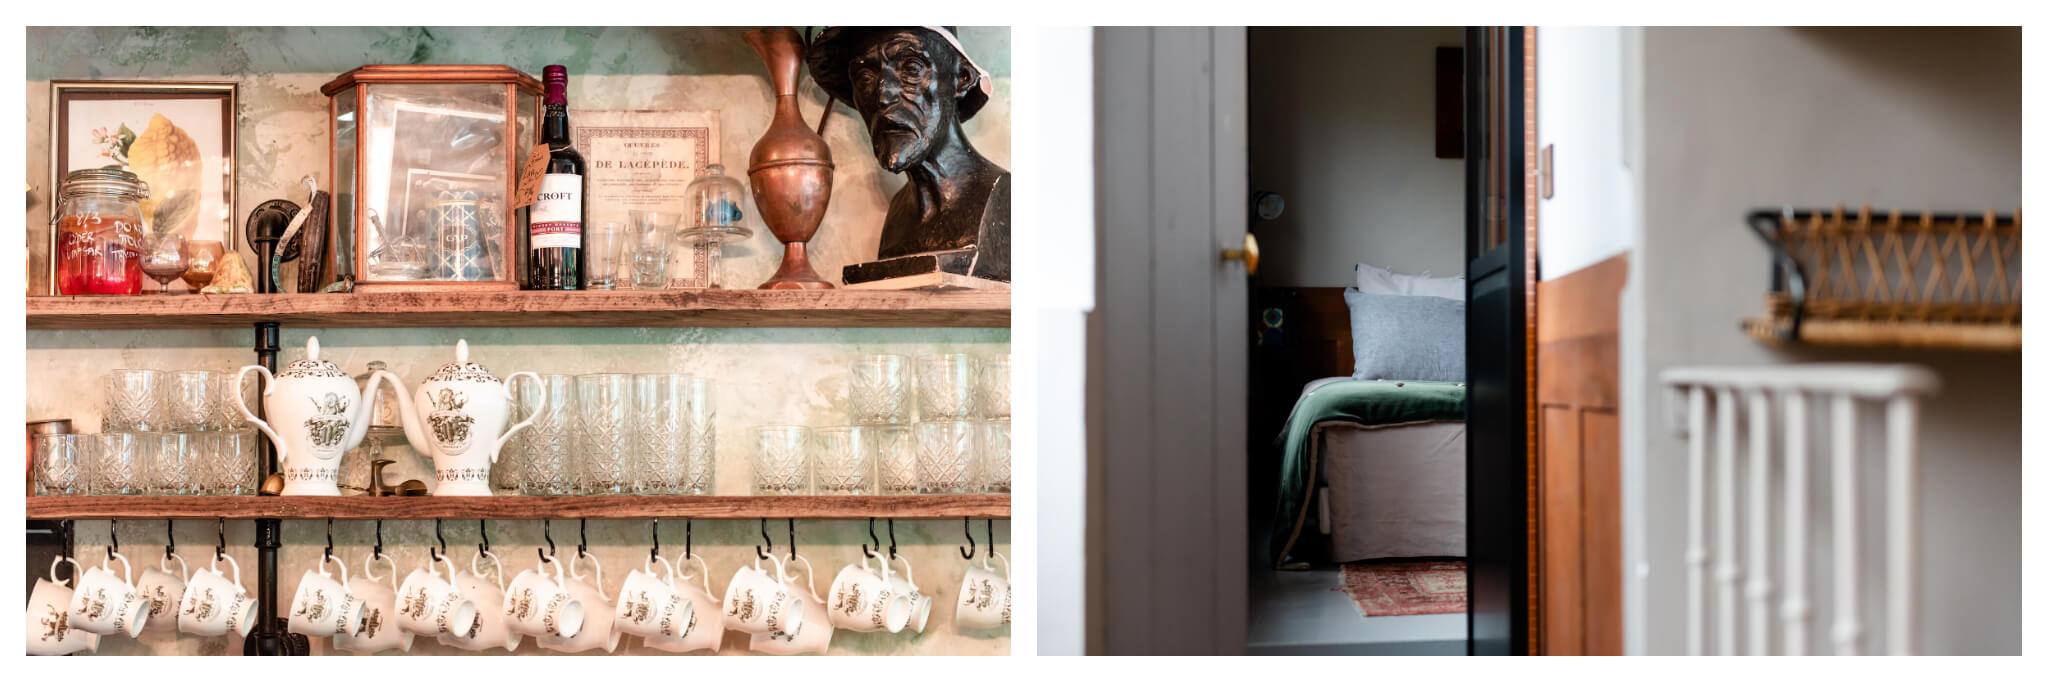 Left: An assortment of teacups and glass cups, along with various randomized items, sit on wooden shelves at Treize au Jardin, Right: An open door at the end of a hallway at Le 66 peaks into a bedroom